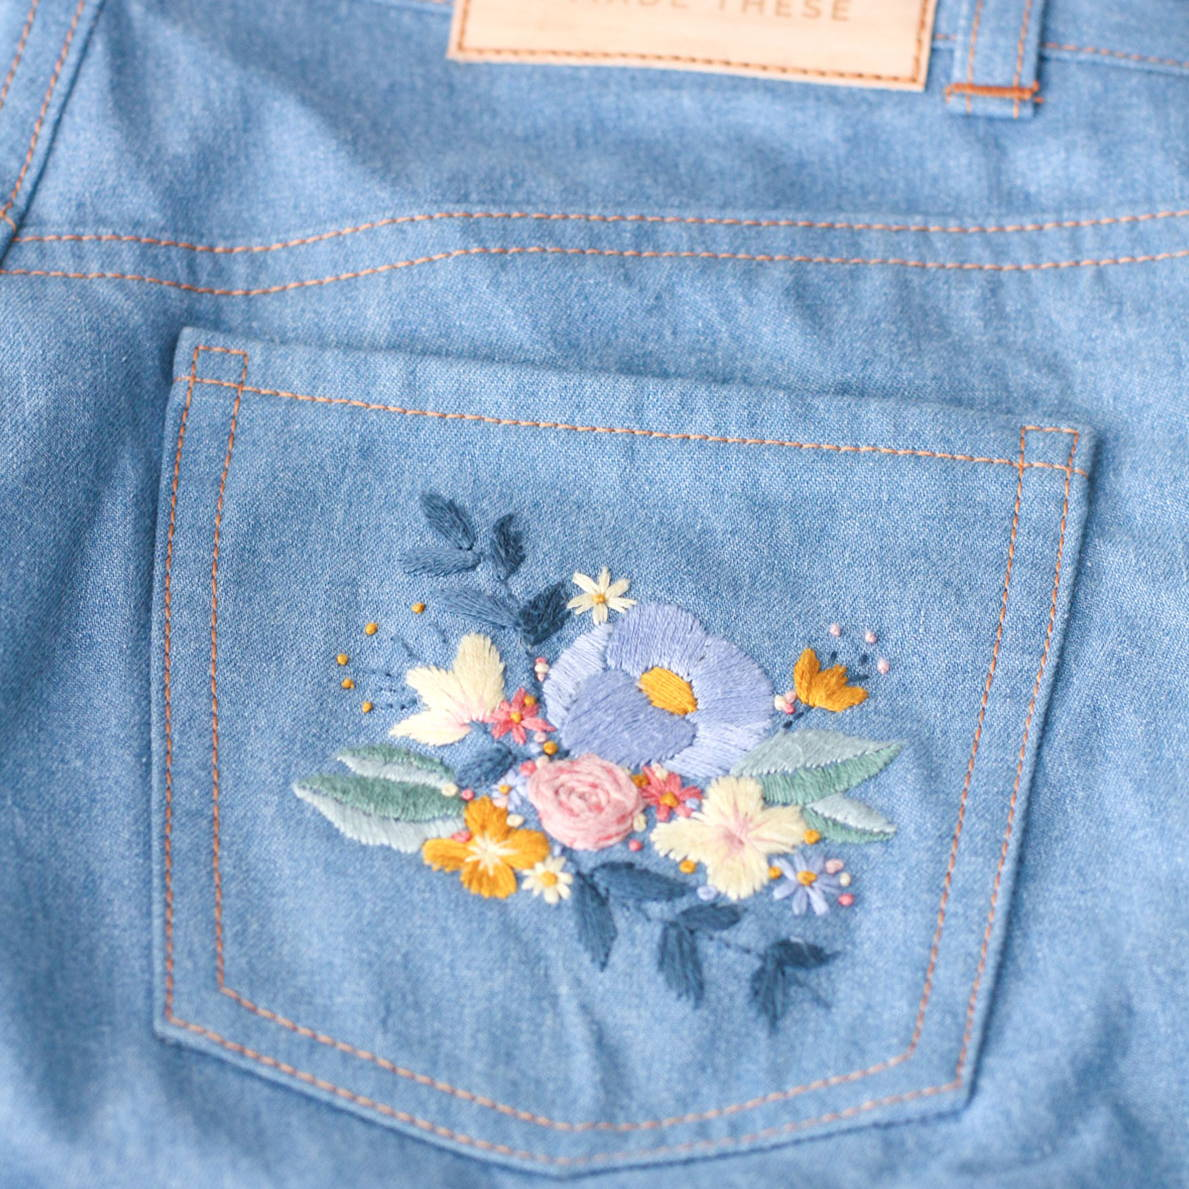 Tips for embroidered jeans